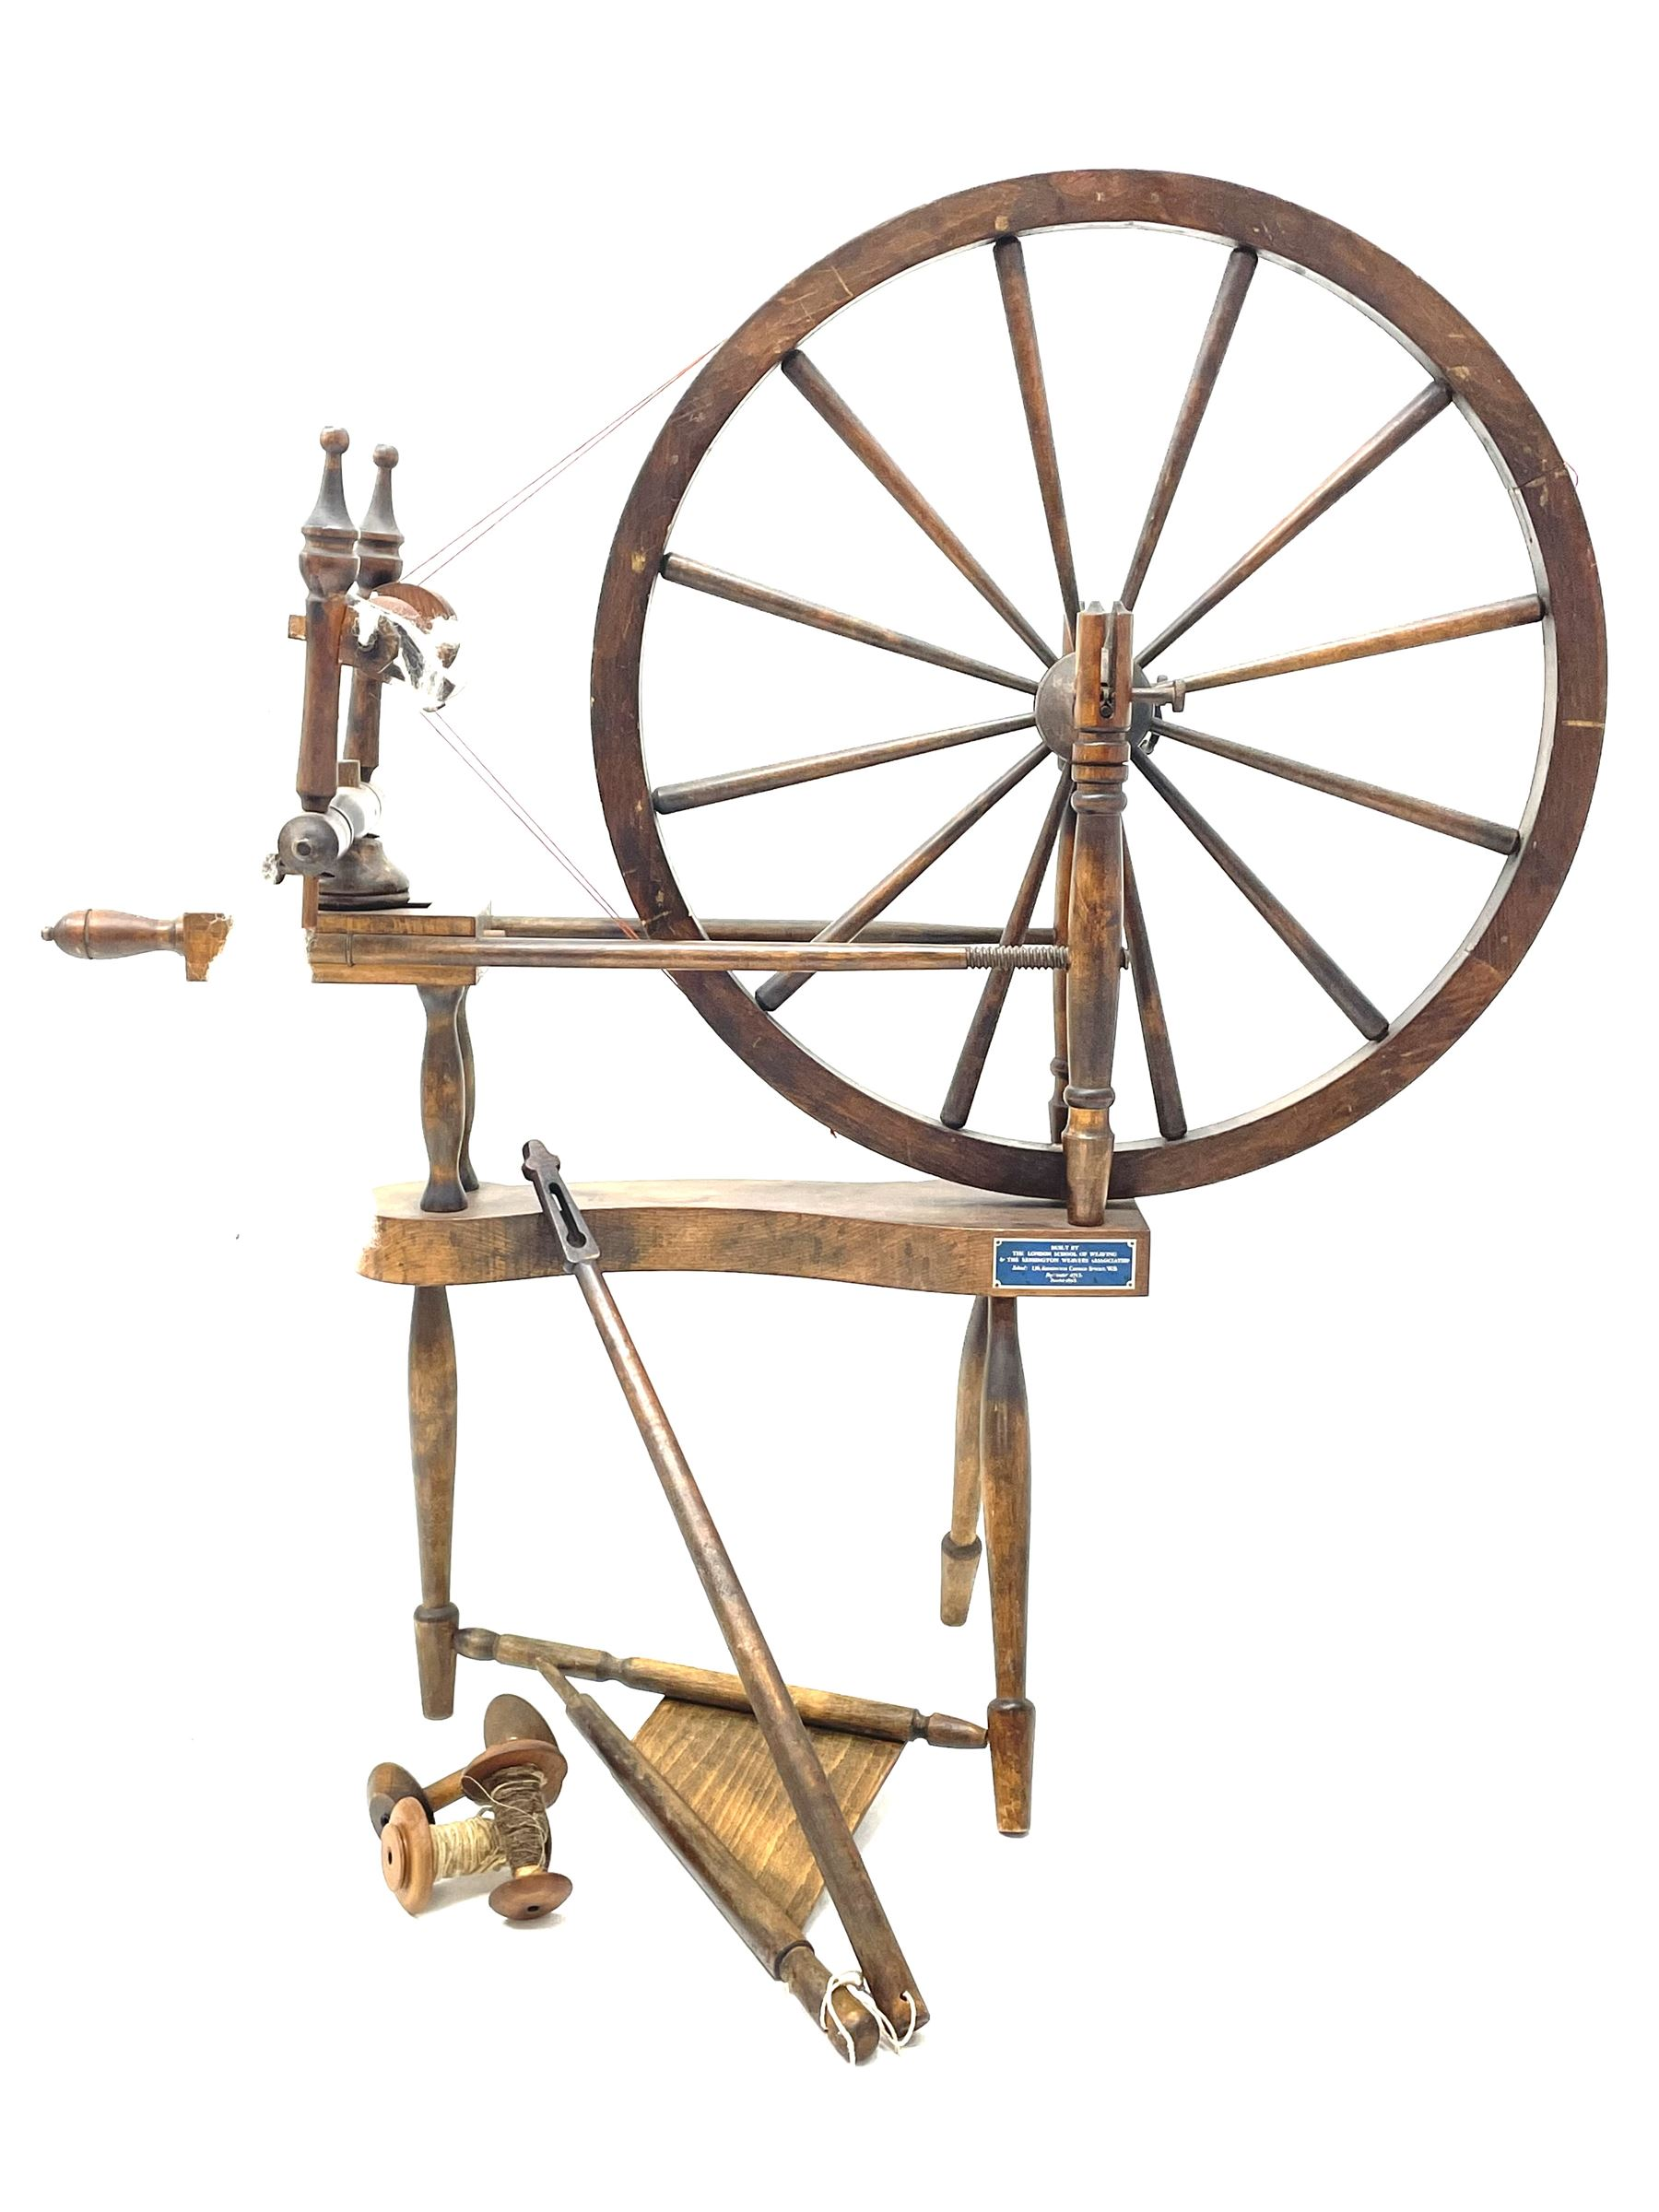 Early 20th century stained beech spinning wheel